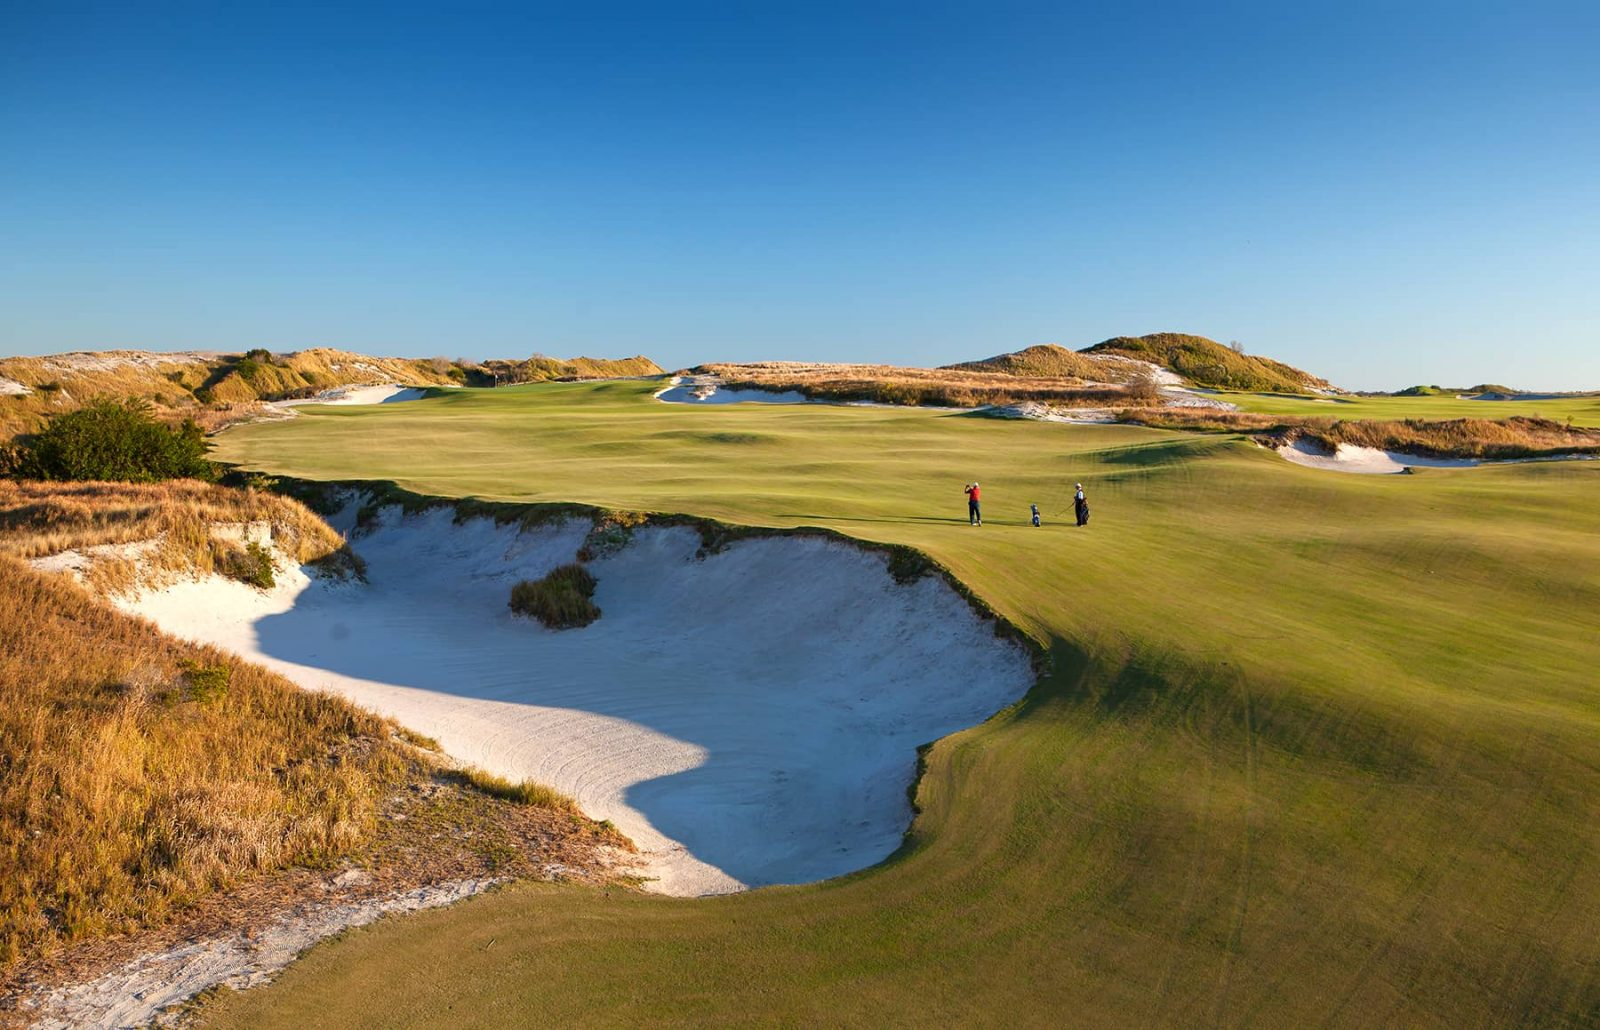 Streamsong Red golf course